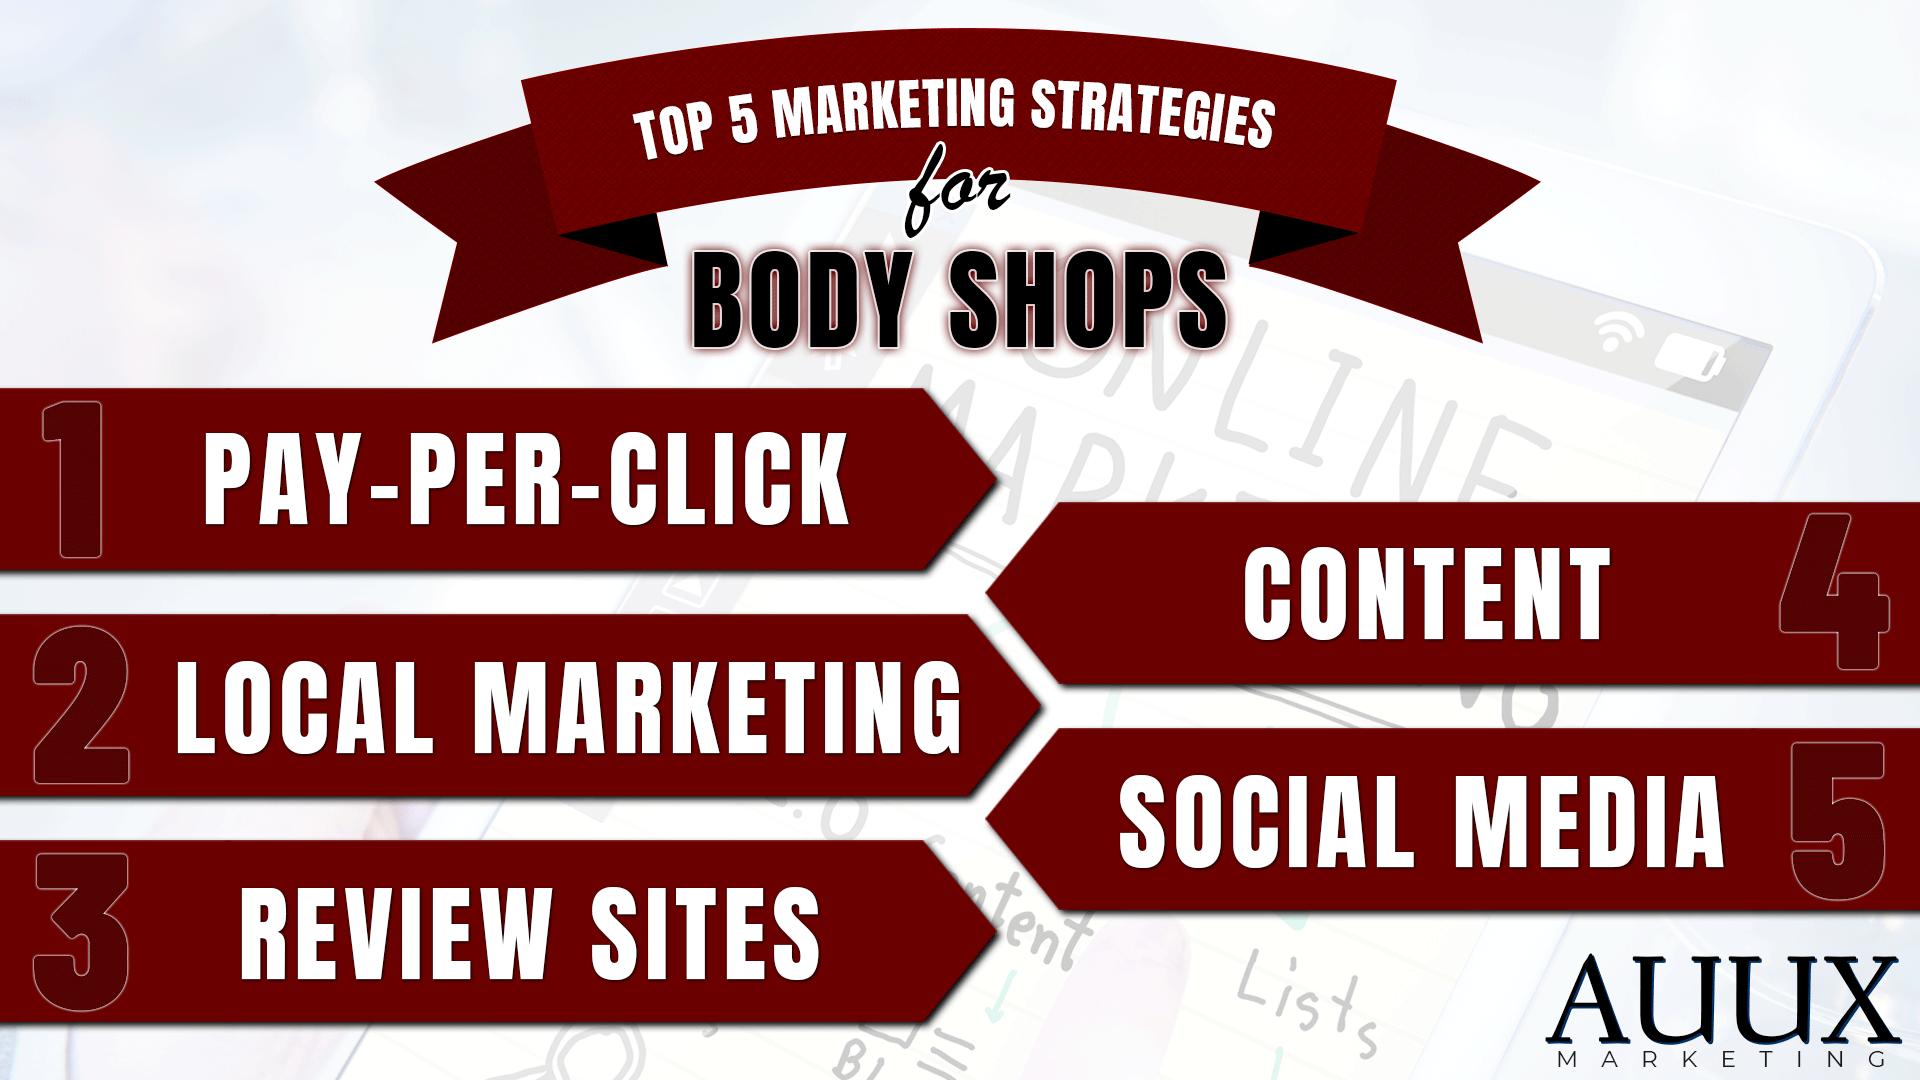 Top 5 Online Marketing Strategies for Body Shops